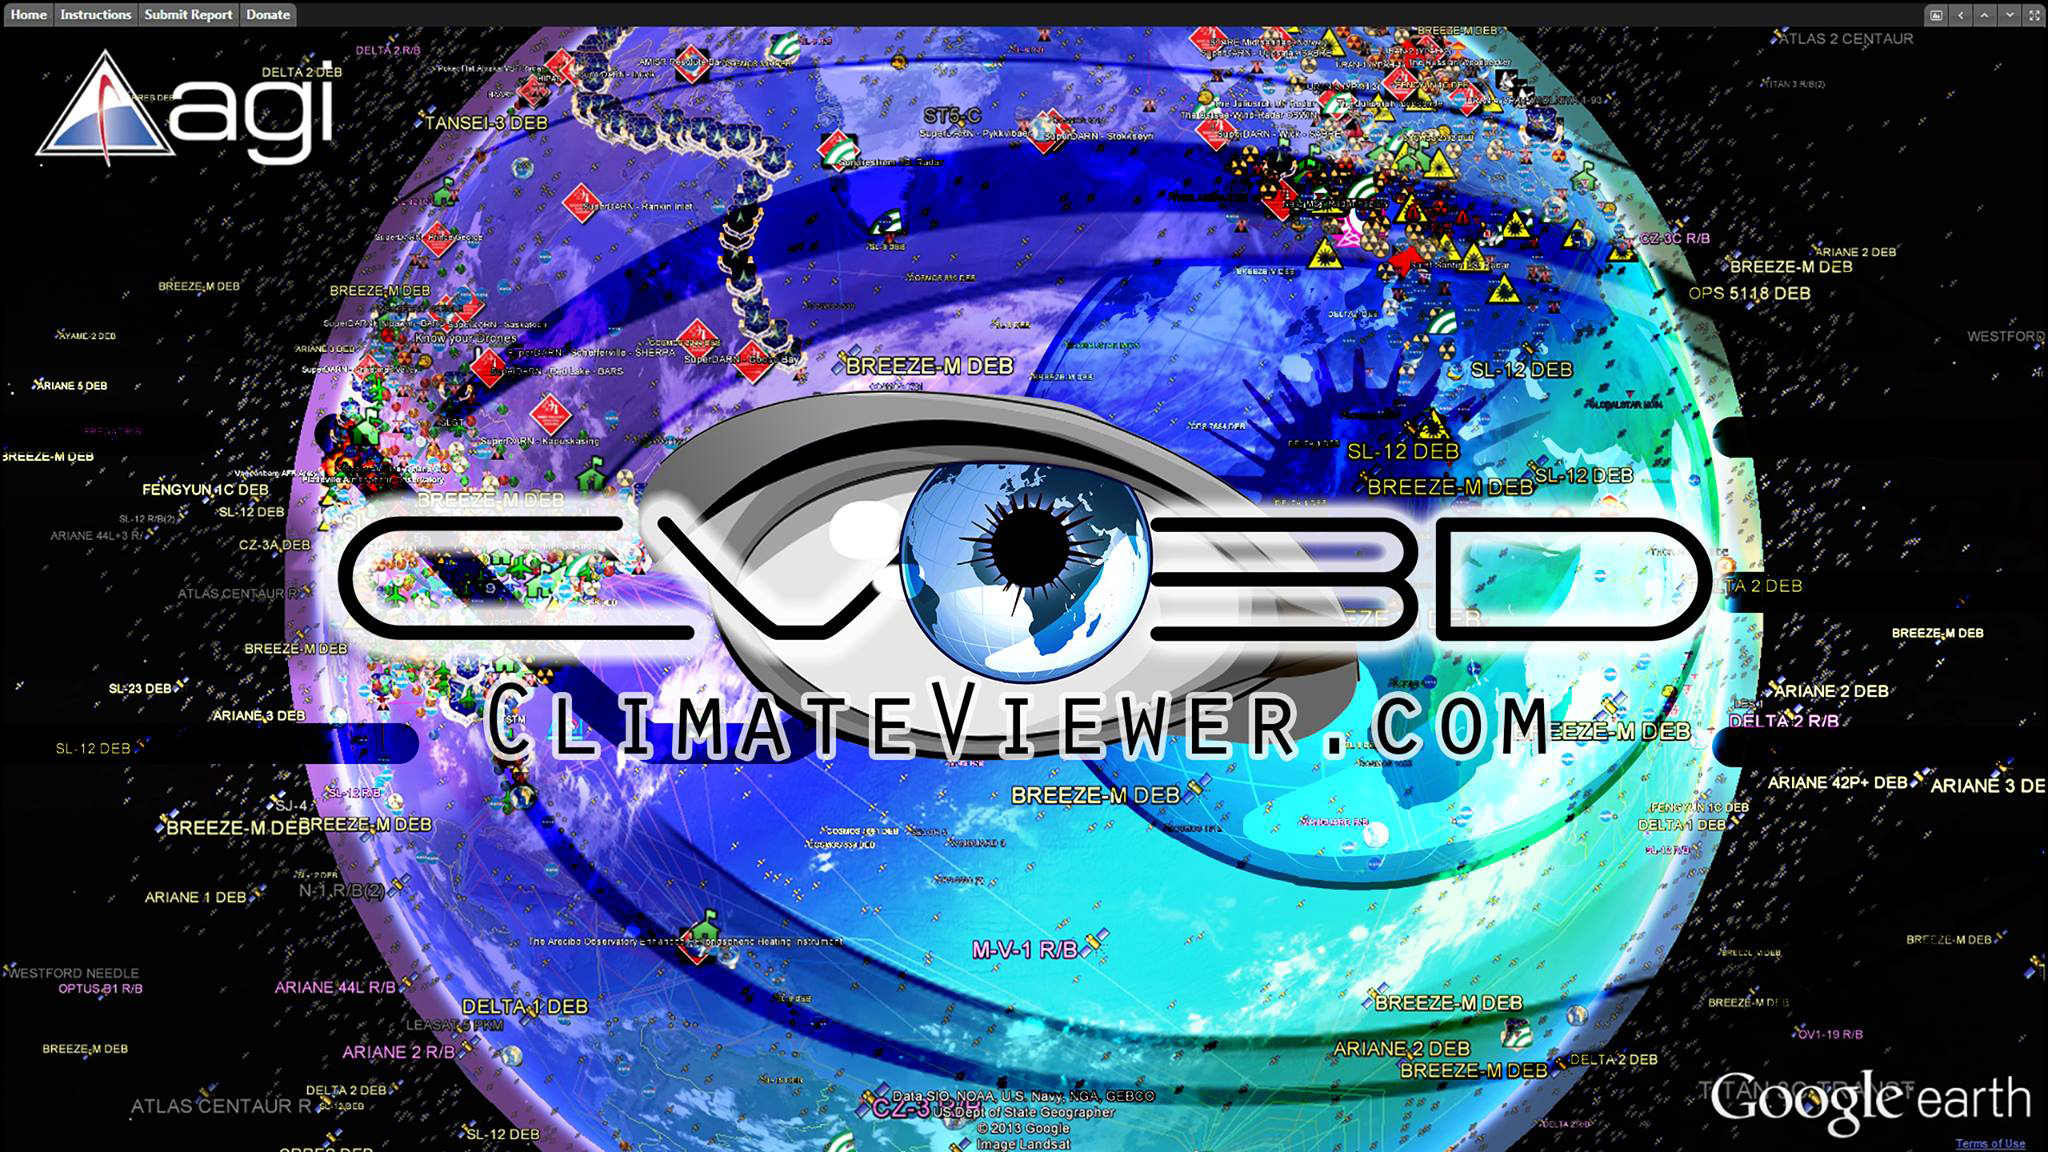 Climate Viewer 3D, Google Earth Climate Change, Pollution, and Privacy Viewer https://climateviewer.com/3D/